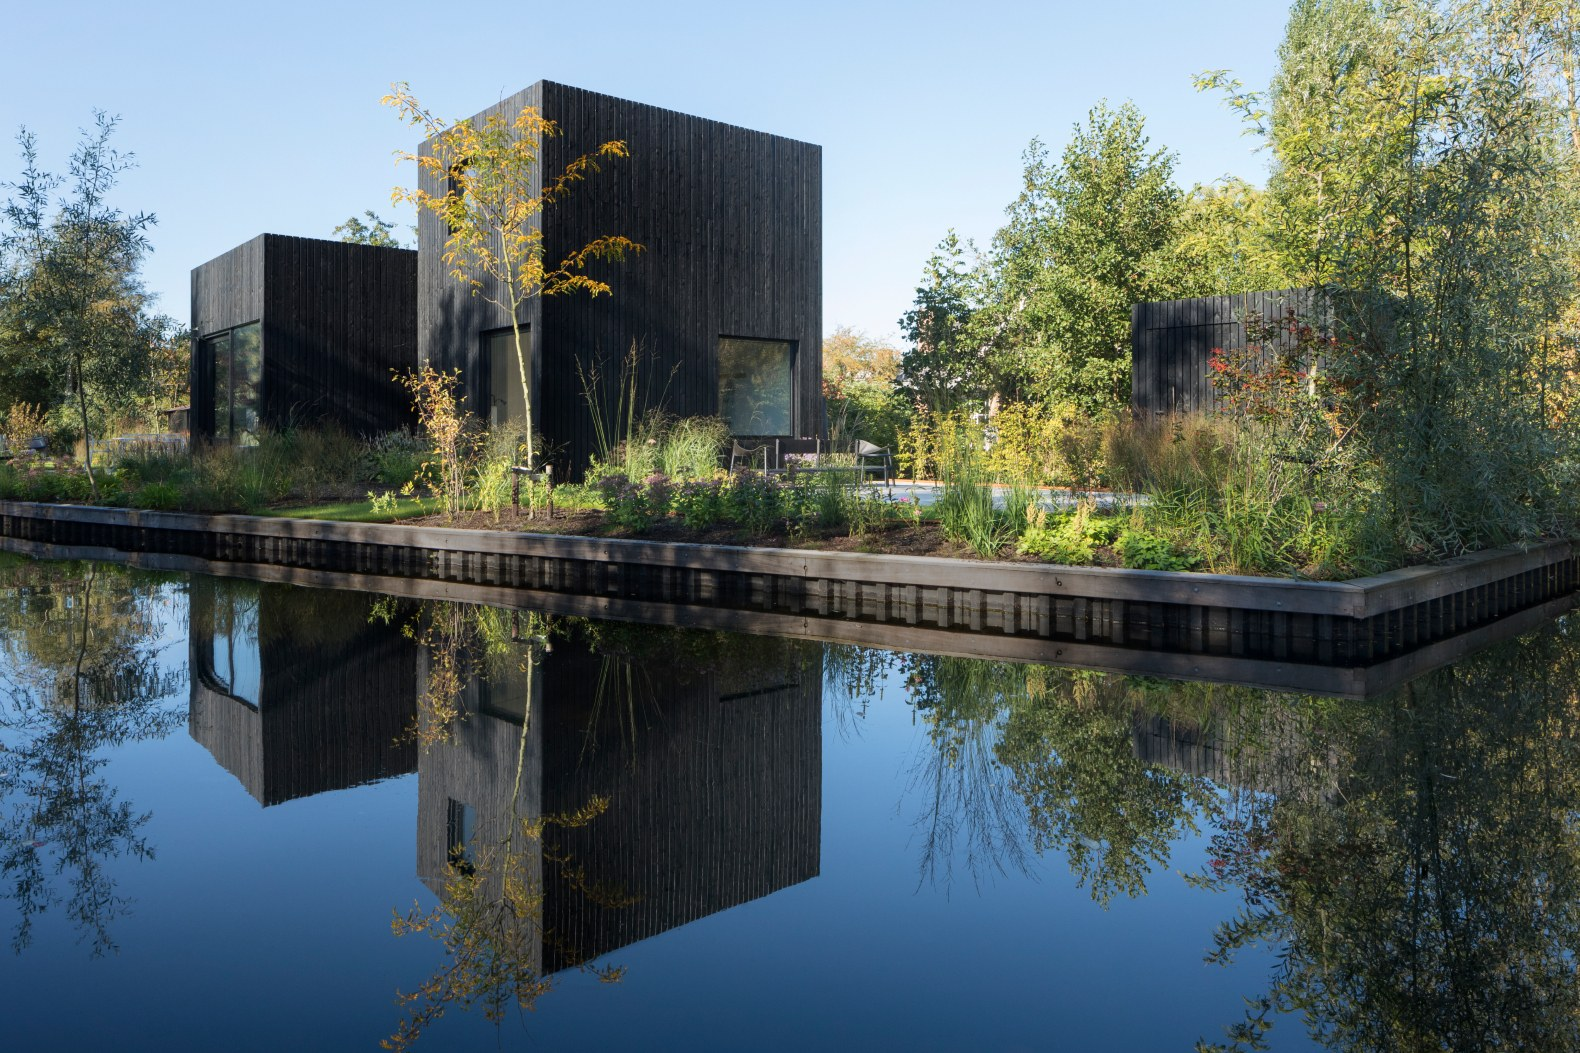 Jet black lakeside home in the Netherlands designed to embrace the surrounding nature